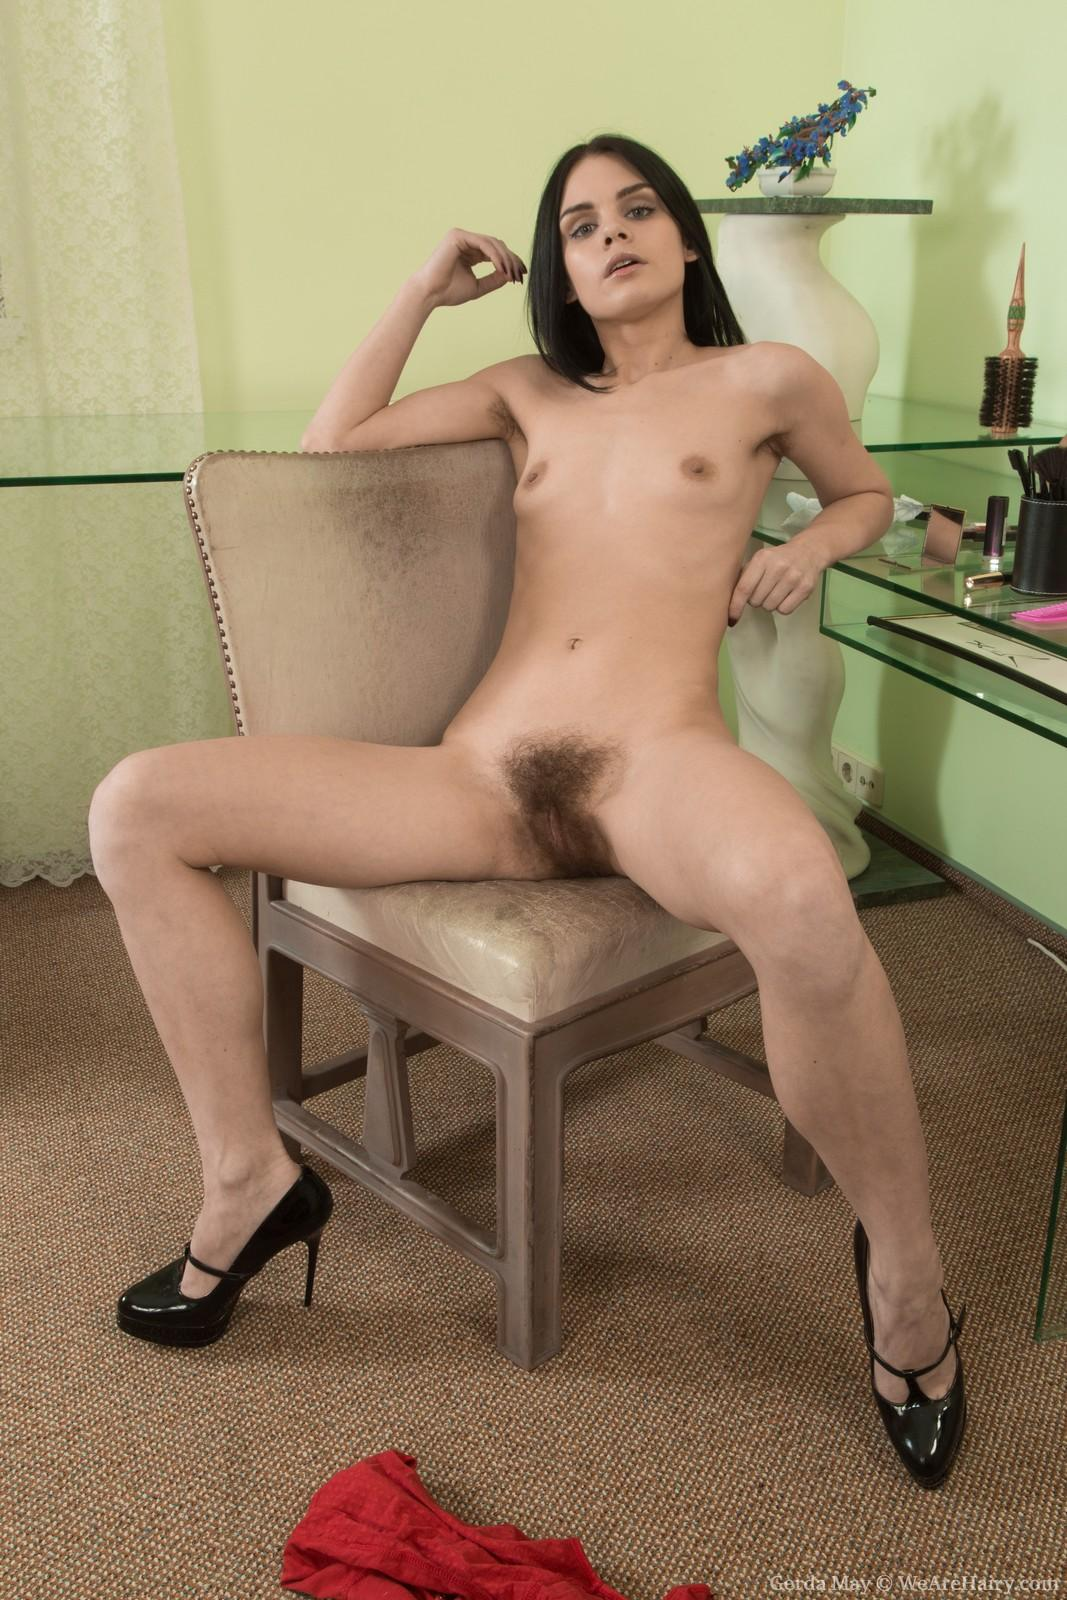 Euro brown-haired Gerda May freeing puny boobs and fur covered cooch in stilettos